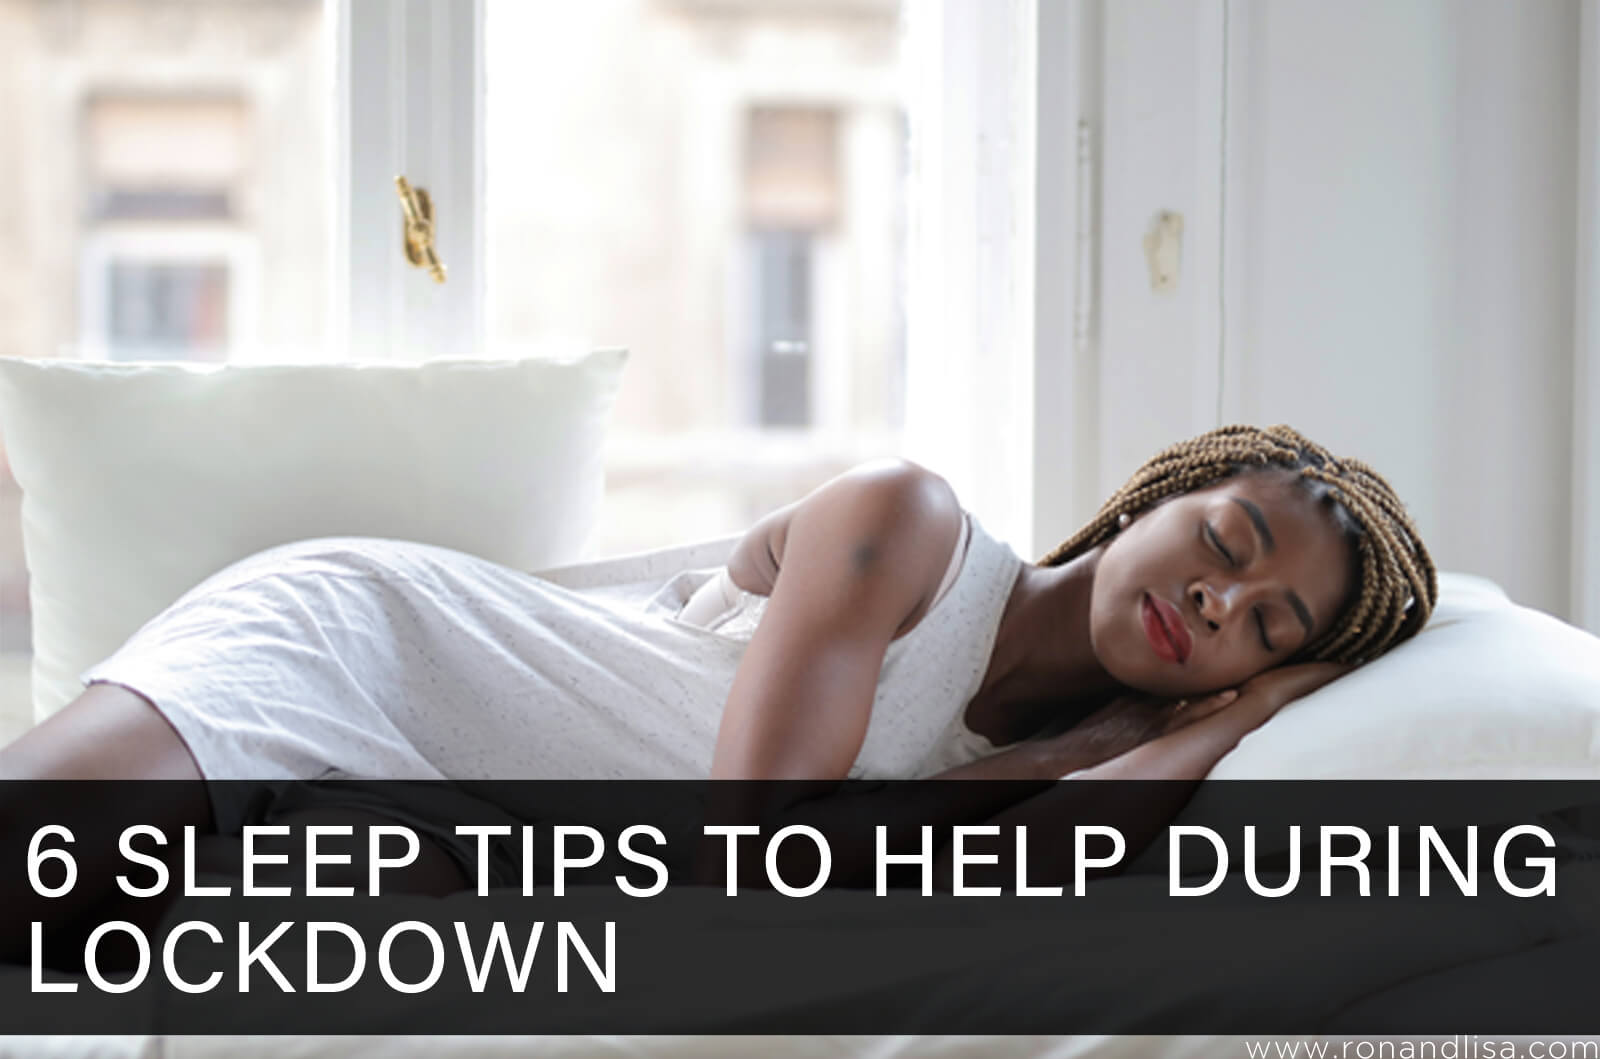 6 Sleep Tips to Help During Lockdown